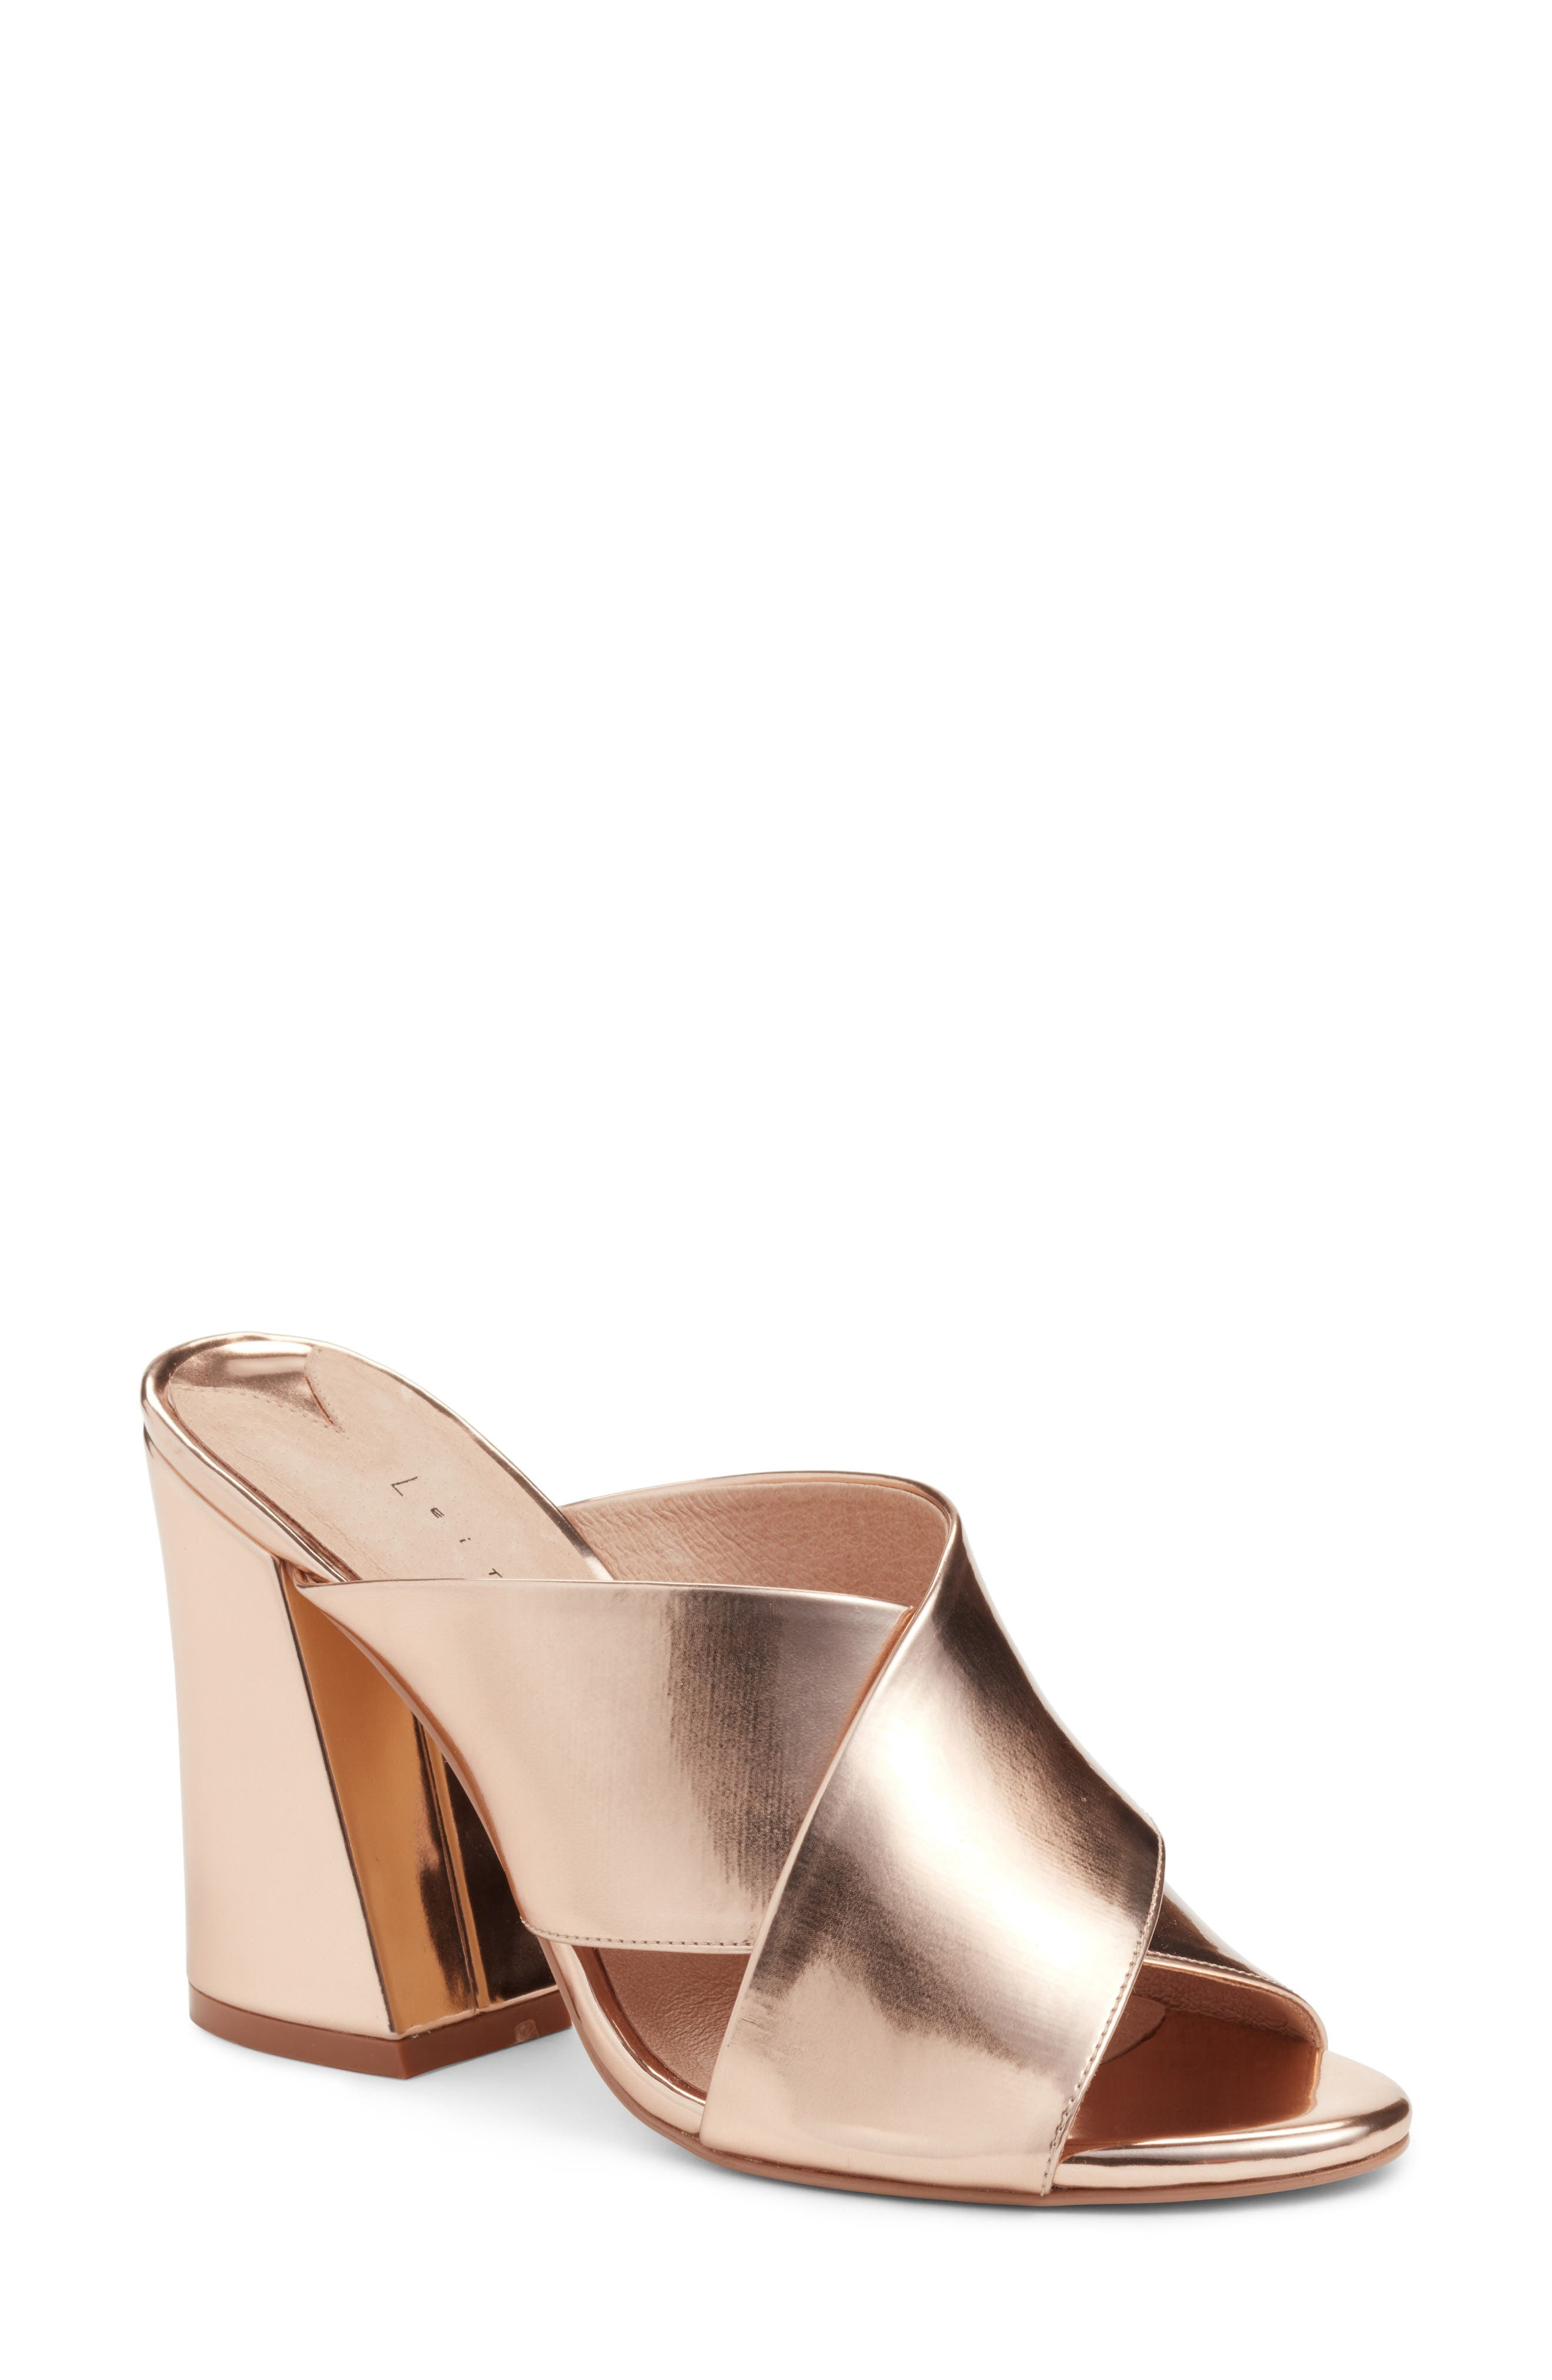 Cammie Block Heel Sandal,                         Main,                         color, Rosegold Metallic Faux Leather